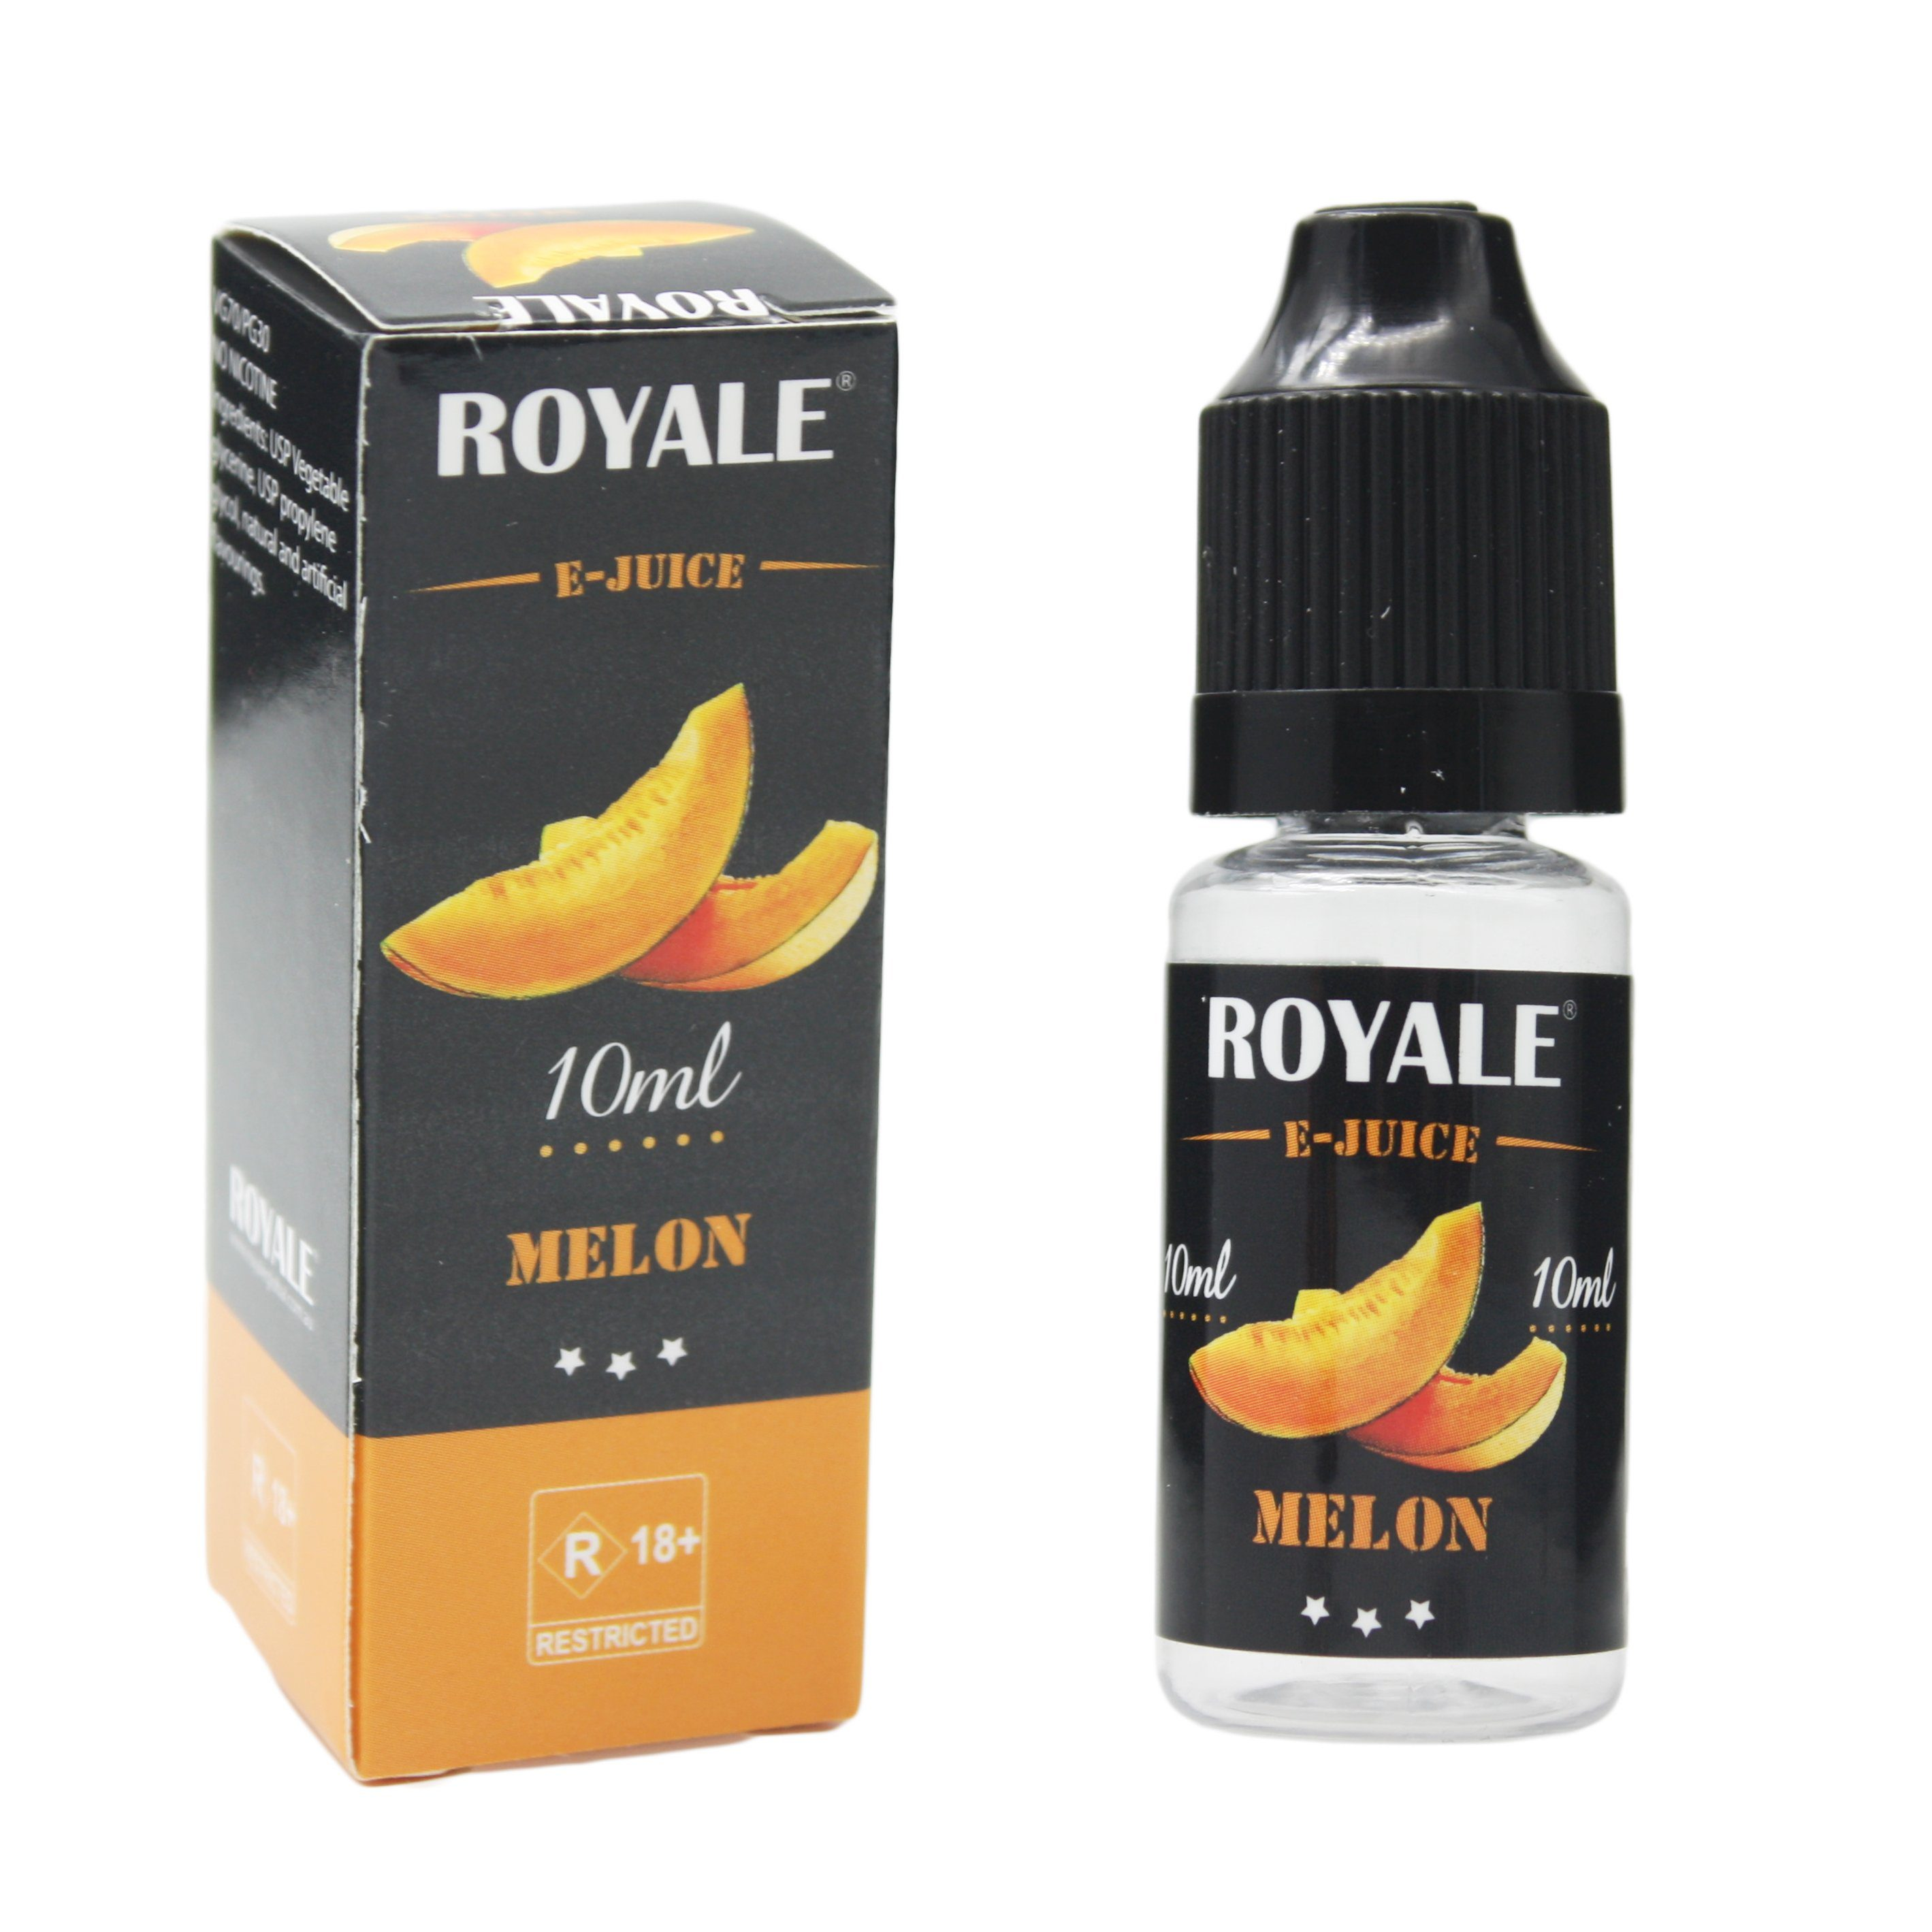 Royale E-Juice - Melon 10ml